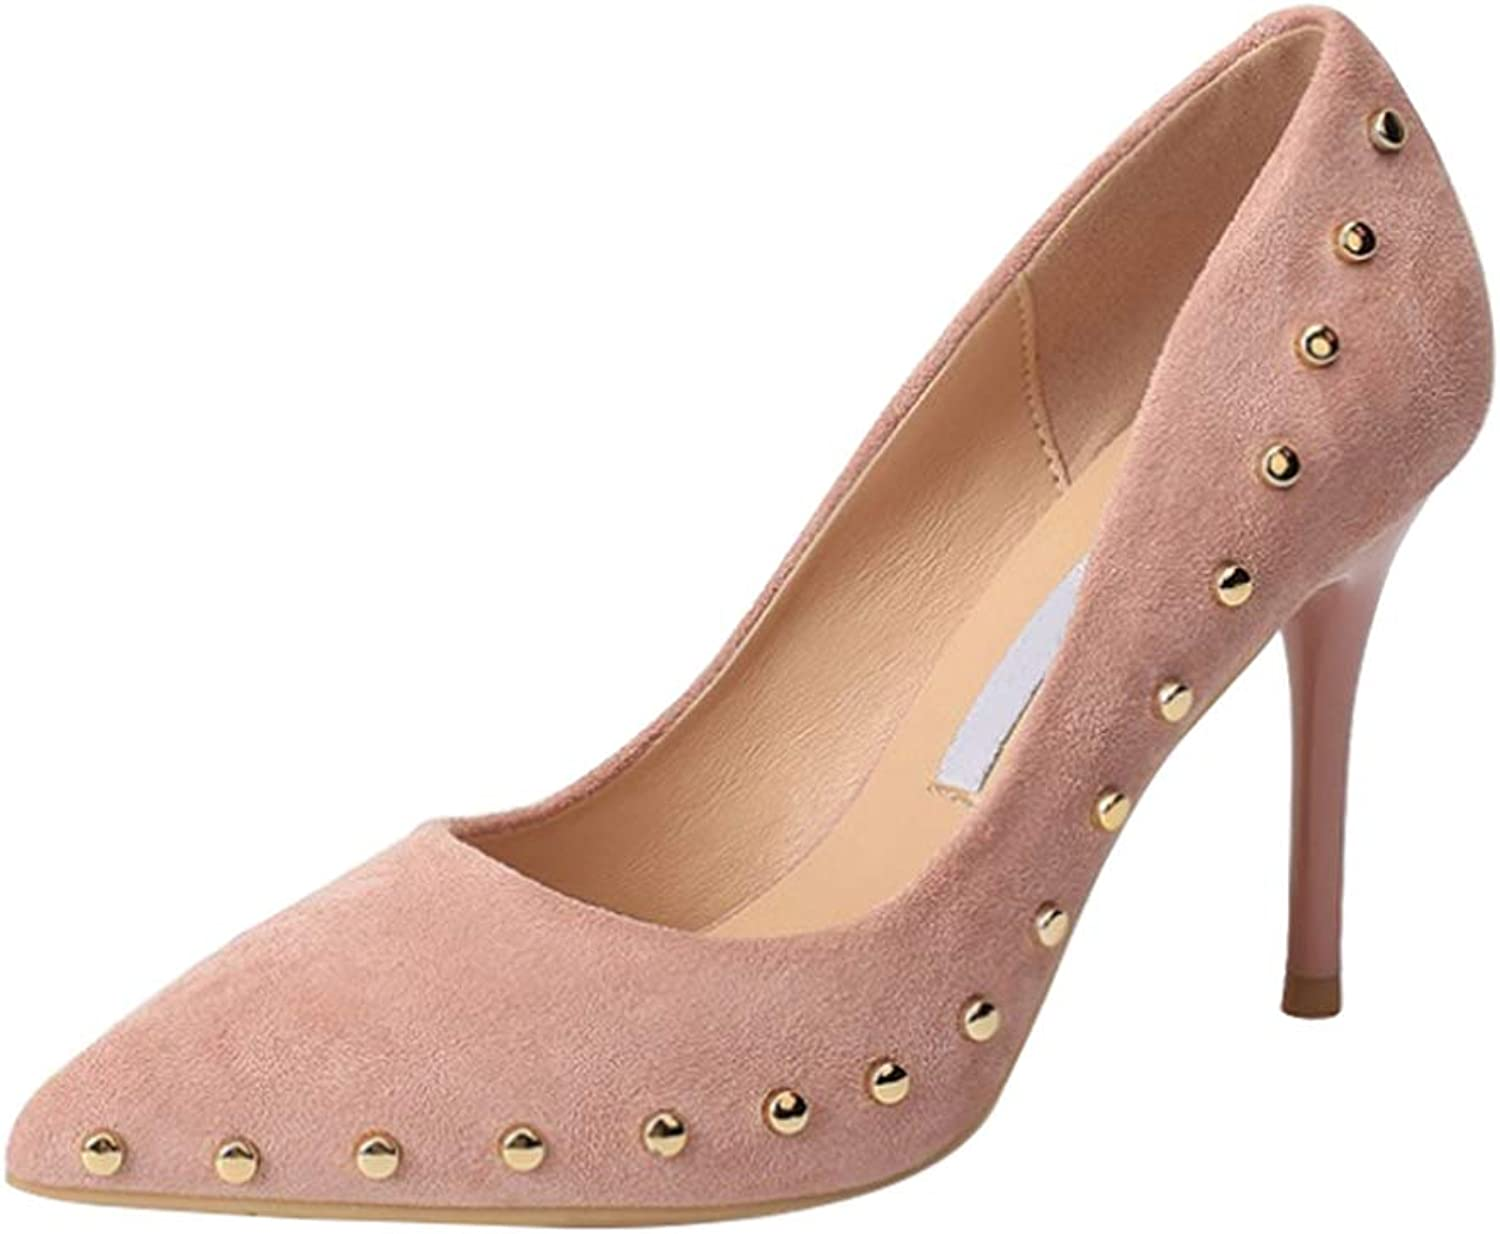 Yudesun Ladies Pointed Court shoes - Women Extreme High Fashion Studded Closed Toe Pumps Slip On Wedding Work Stiletto